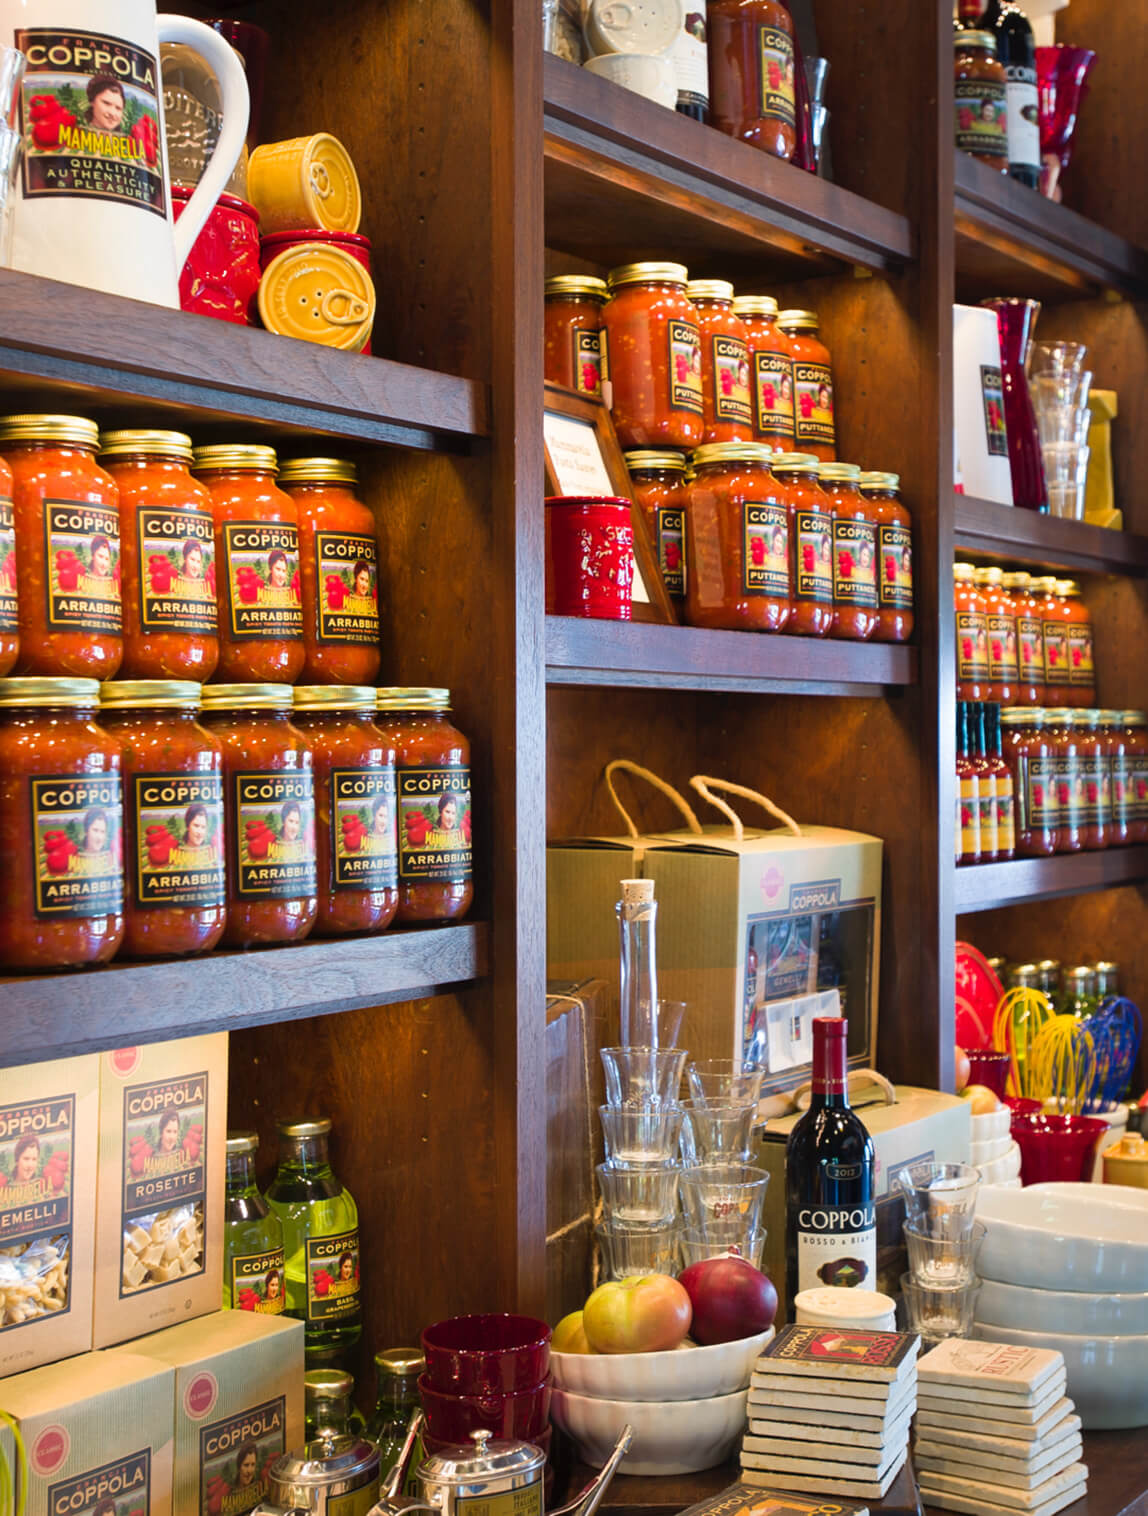 Display of Mammarella products in Gift shop at Francis Ford Coppola Winery.